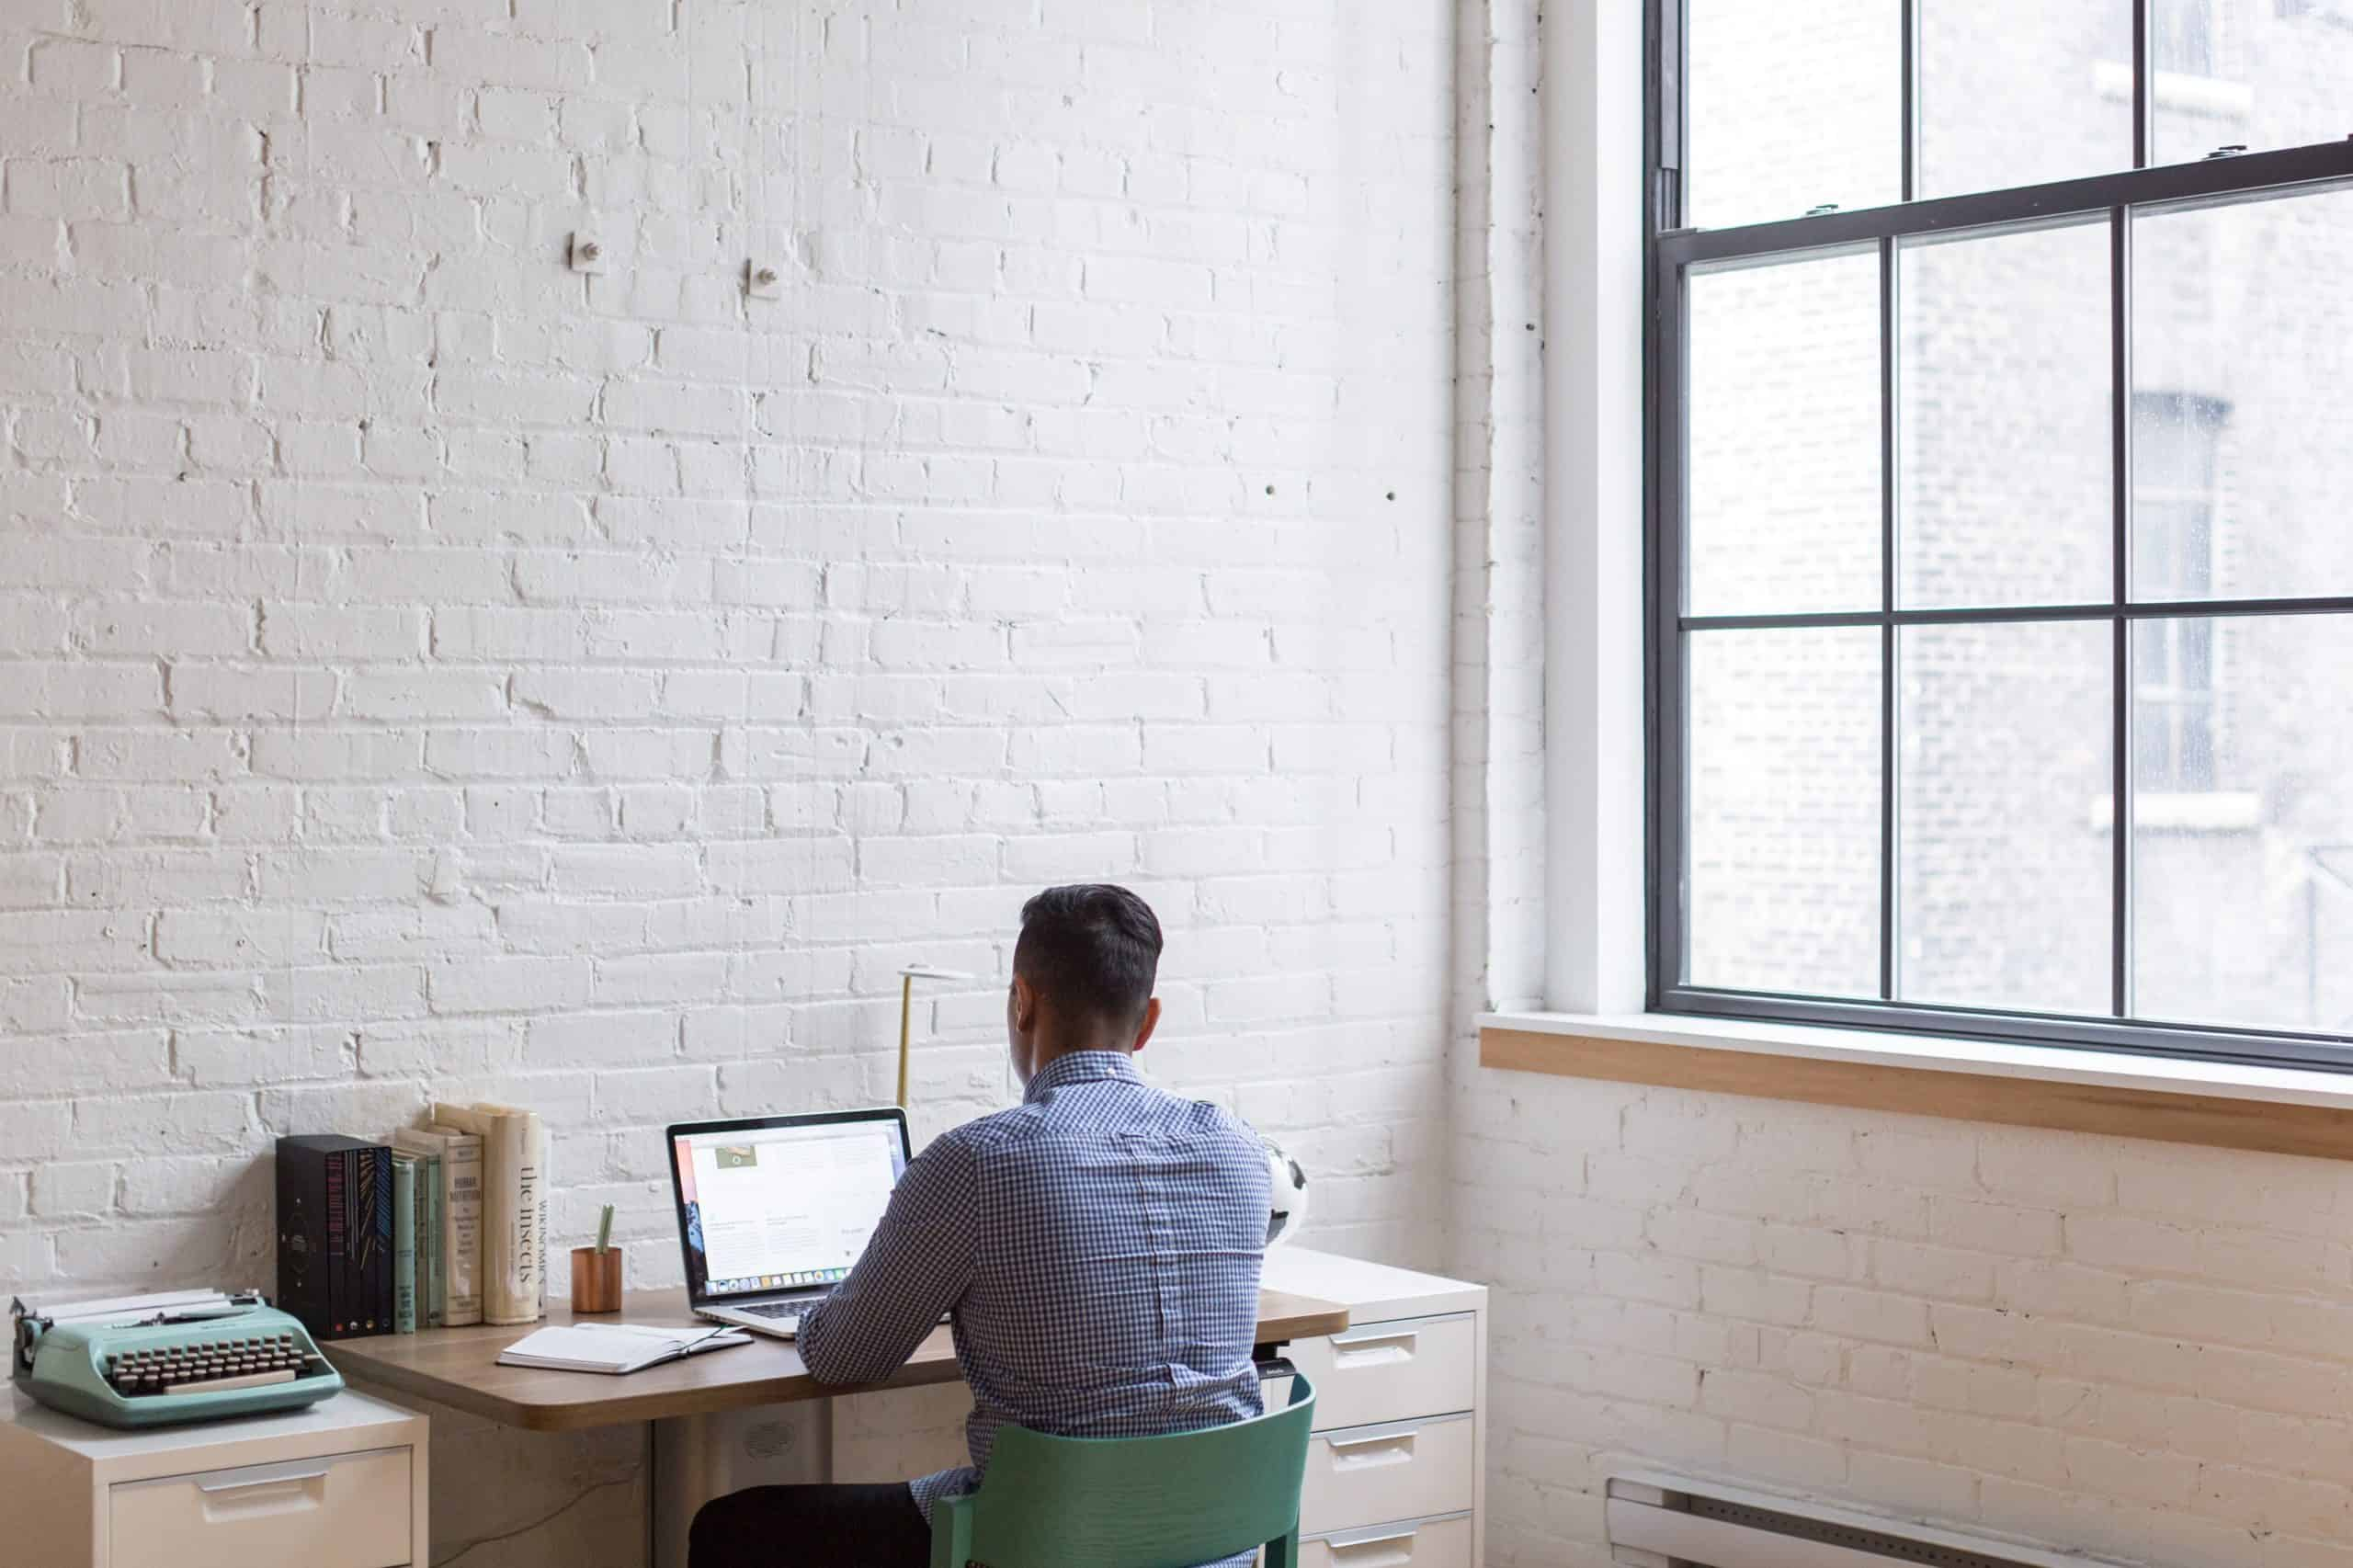 man-working-on-computer-at-desk